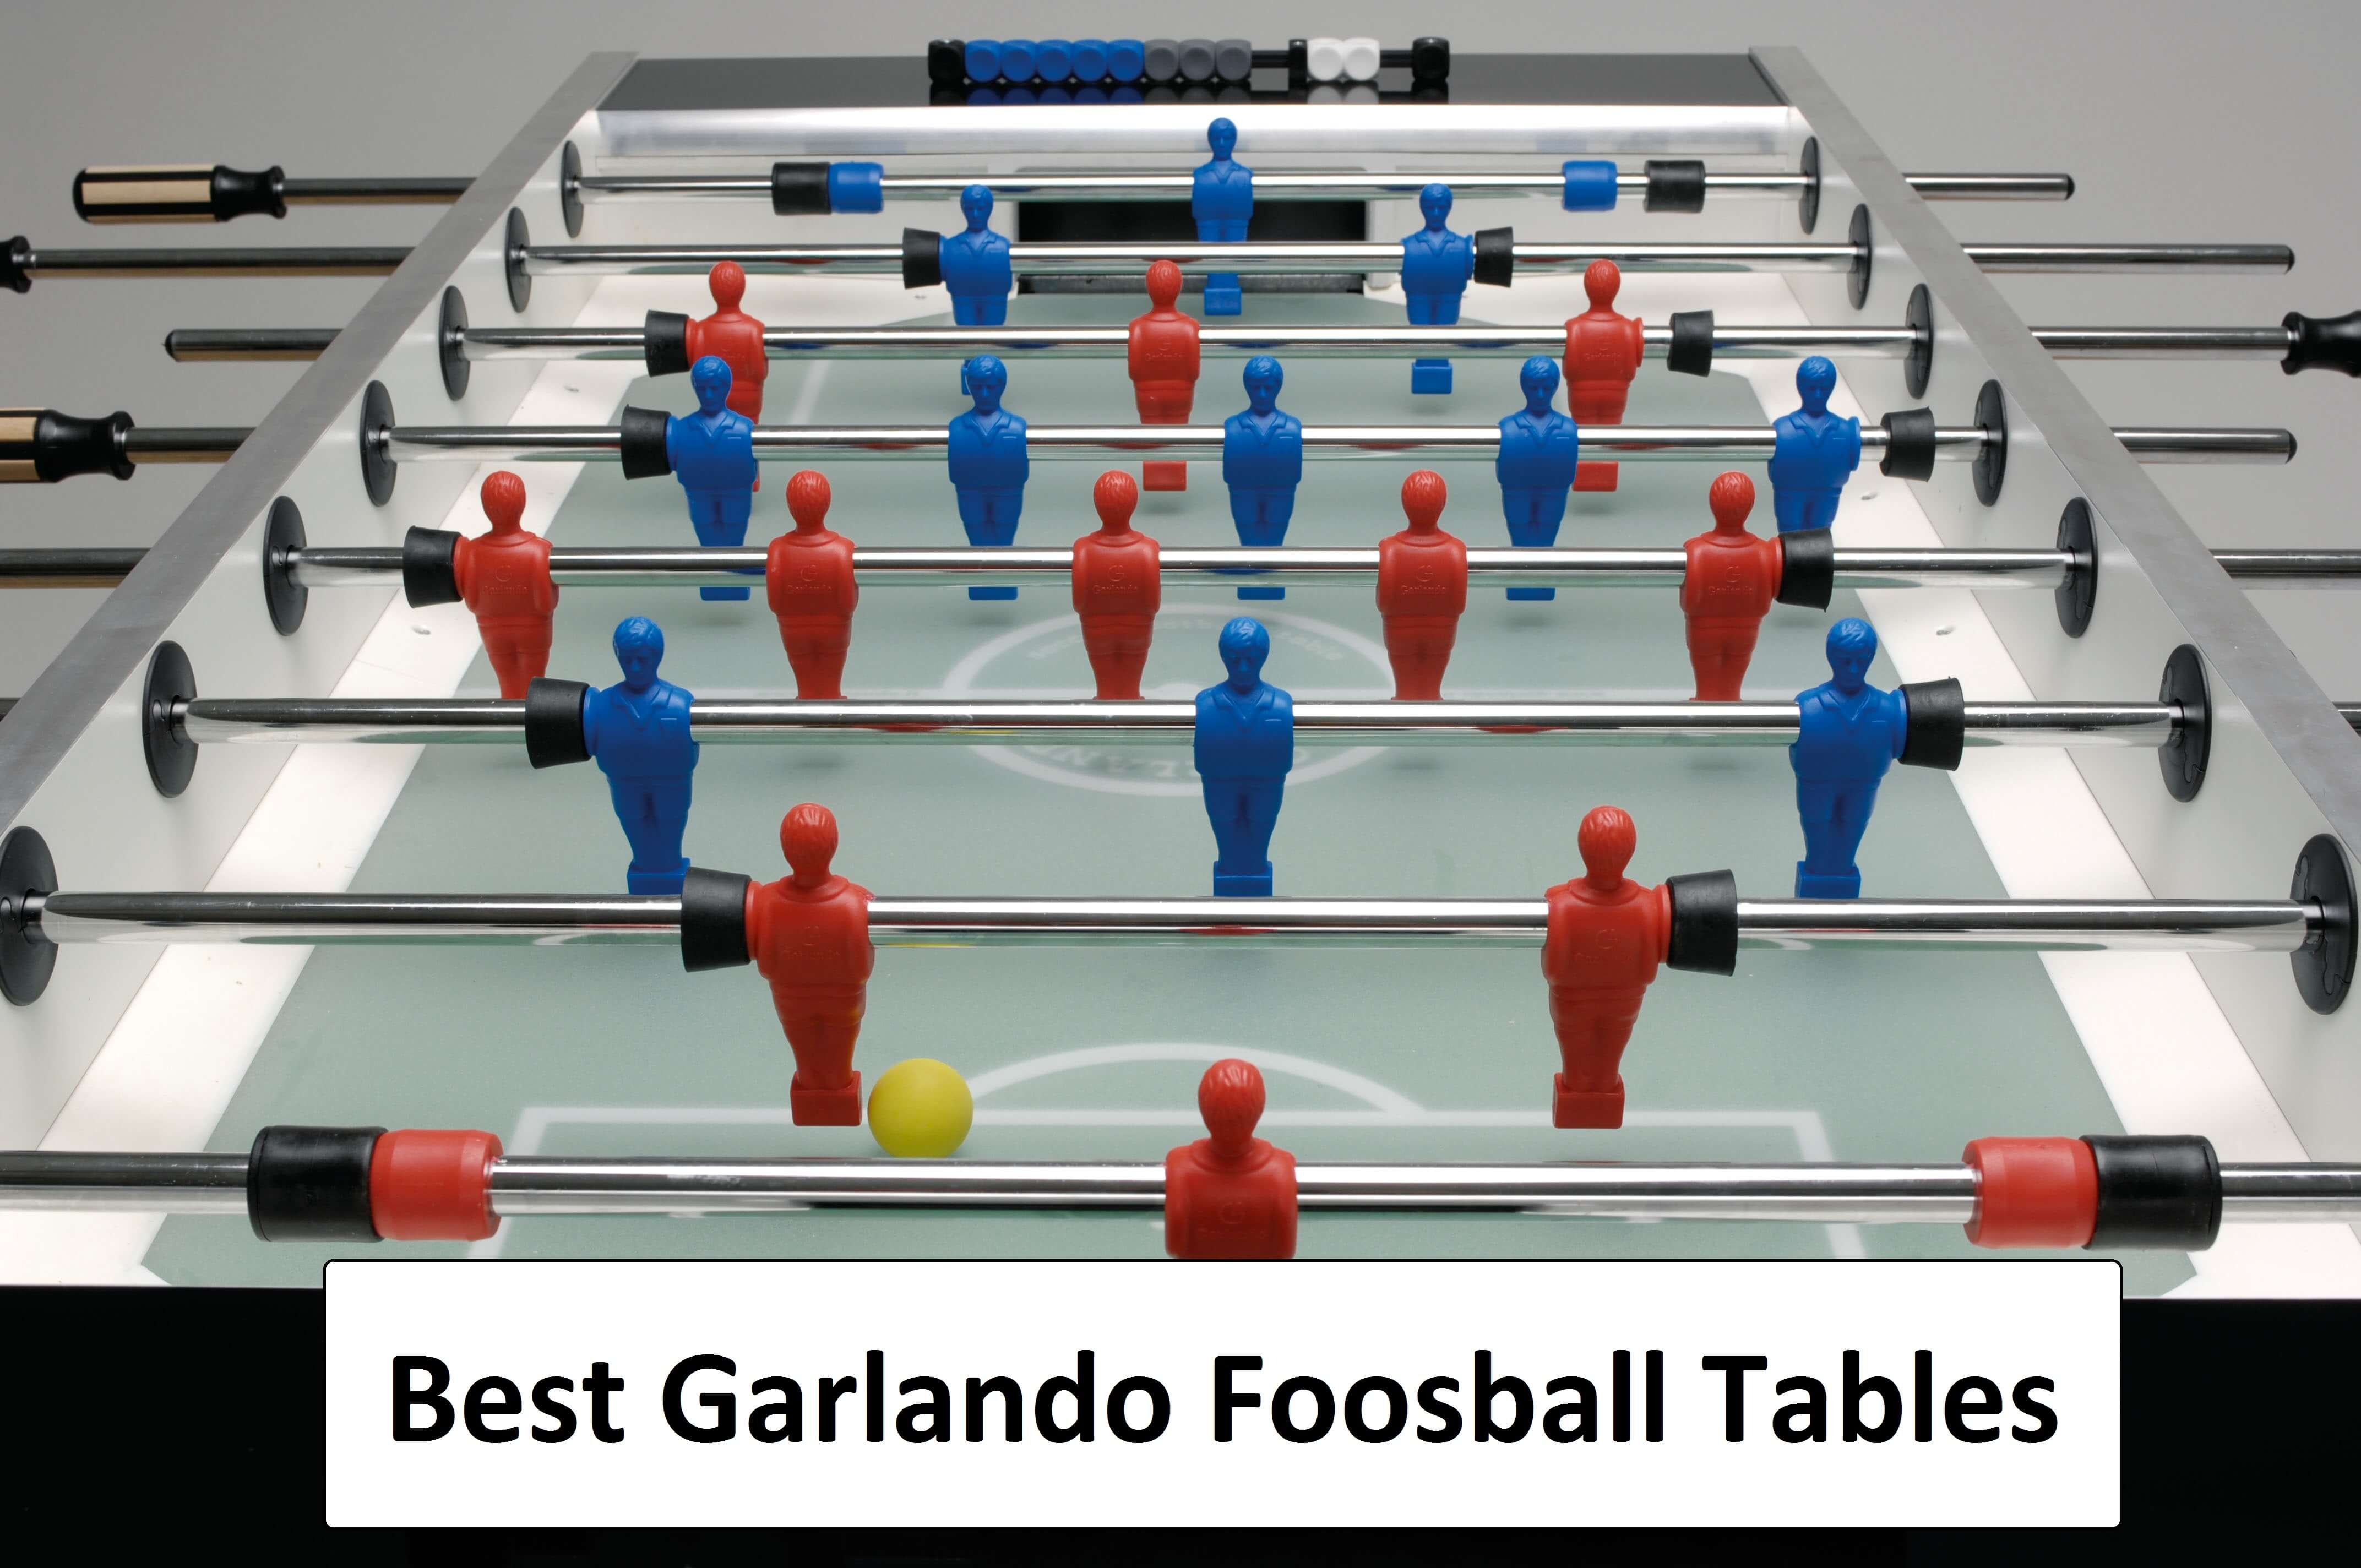 Top Garlando Foosball Table u2013 Find out which is best & KICK Foosball Tables - Find Out which are Good and Why!